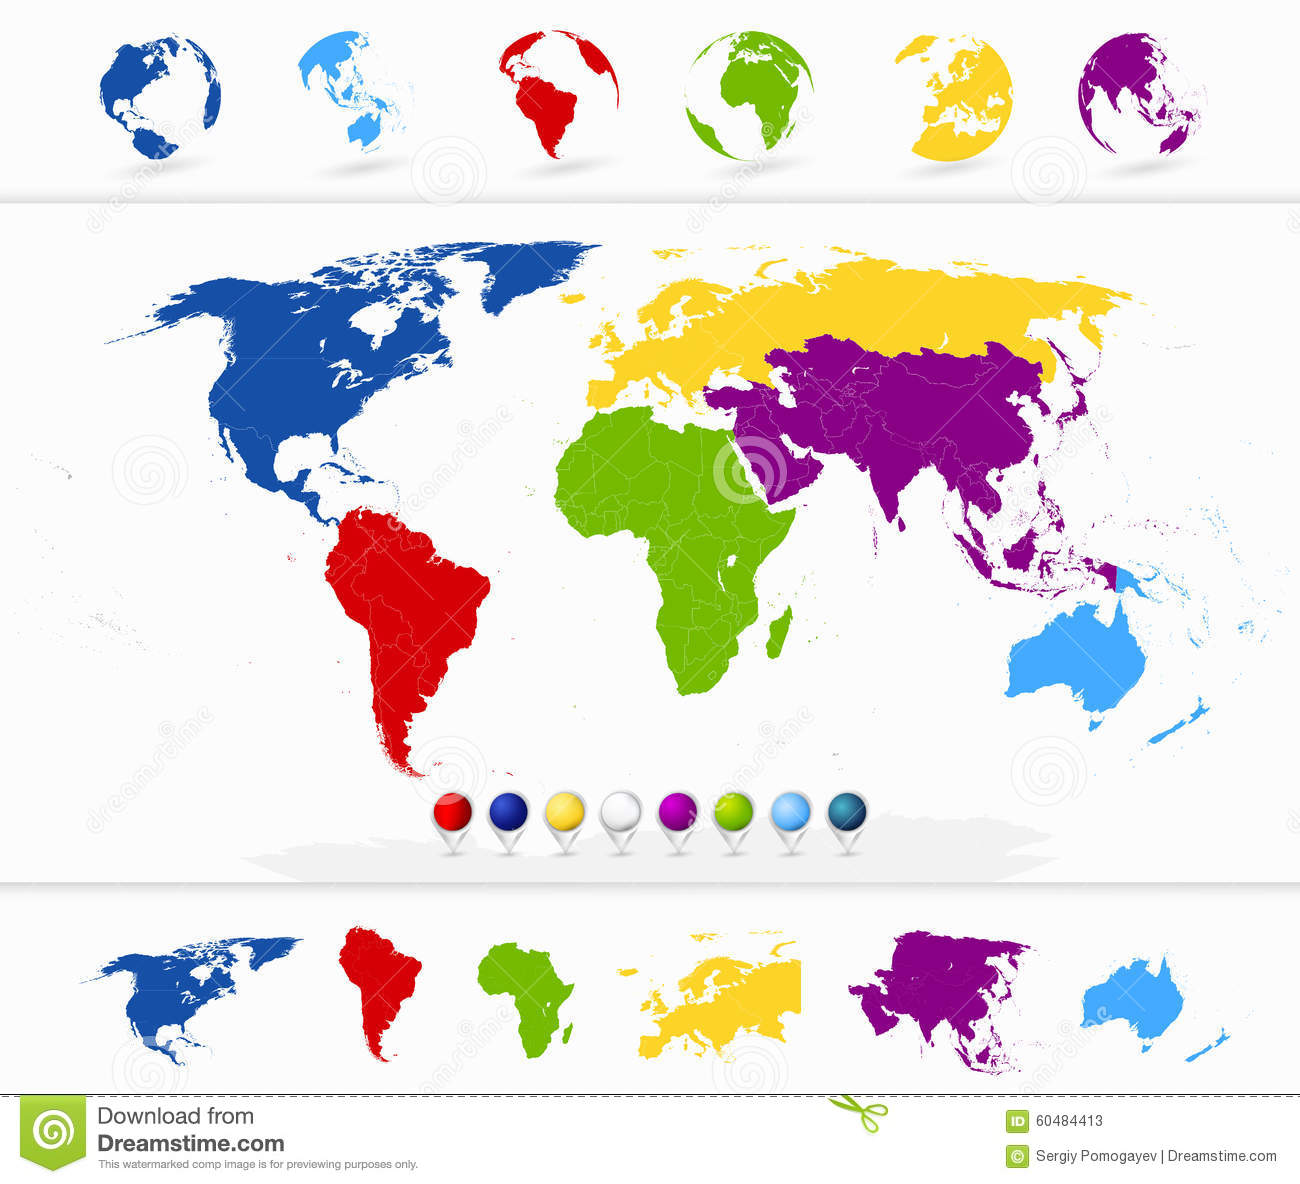 north map symbol with Stock Photo Colorful World Map Continents Globes Detailed Navigation Markers Image60484413 on pass moreover 3762543516 together with 5870355403 besides Detailed Vector Map Of North Central America Asia Pacific Europe South America Middle And East Africa Regions Vector 24653463 besides 12163183.